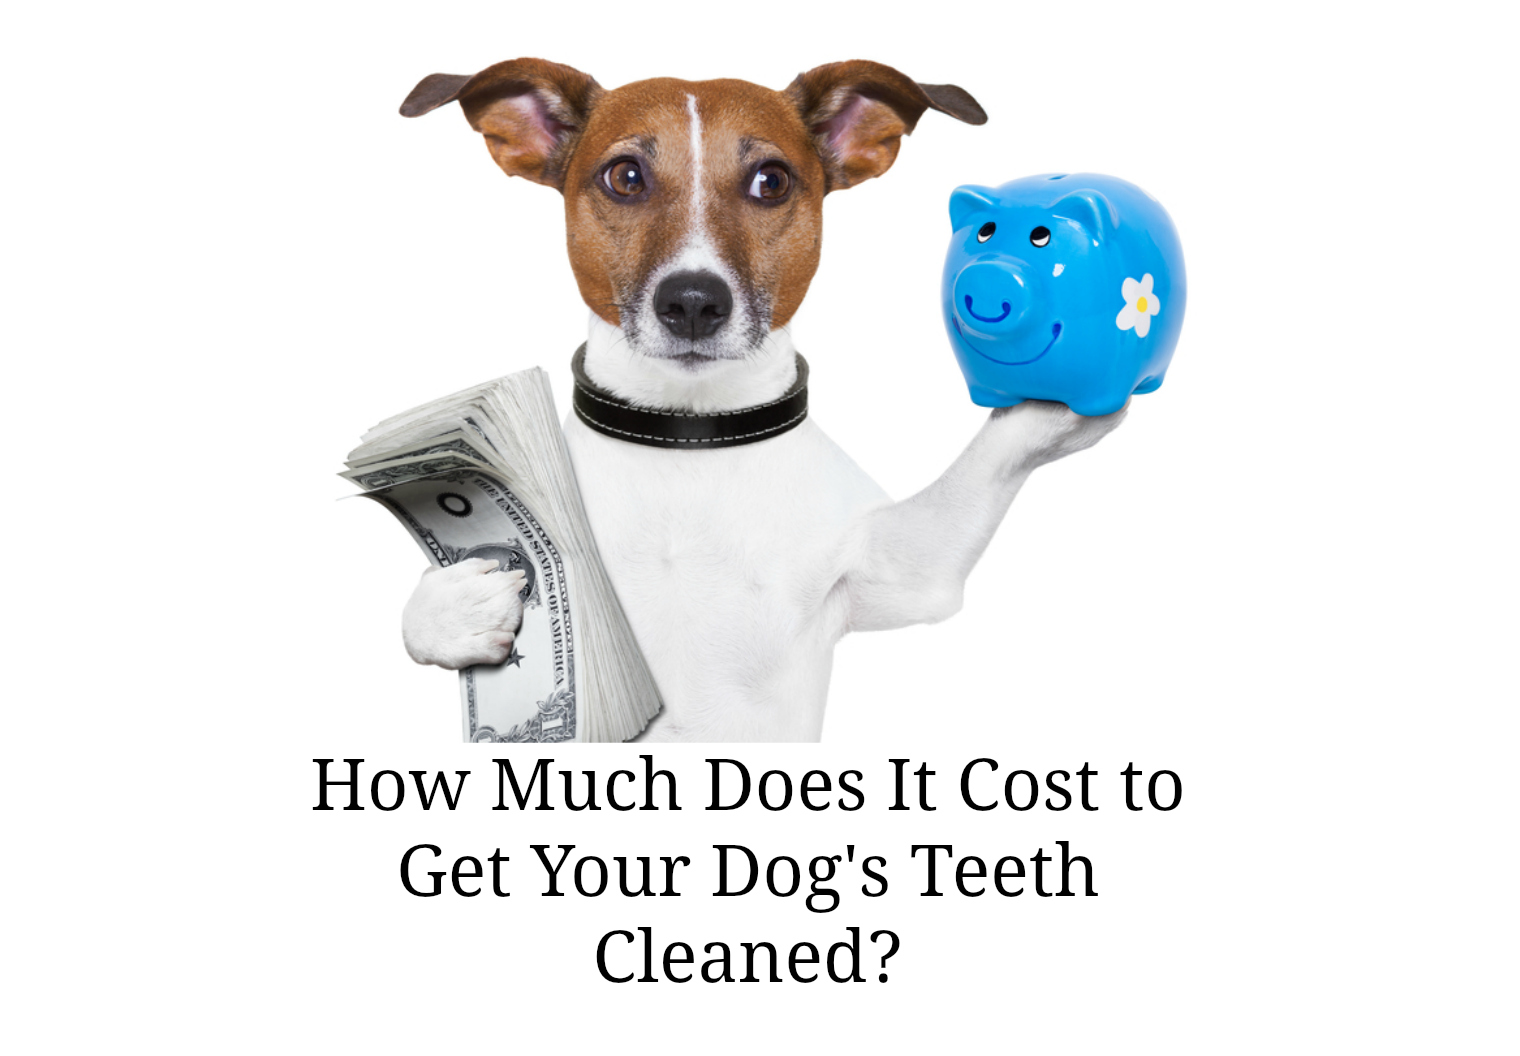 Cost To Get Dogs Teeth Cleaned